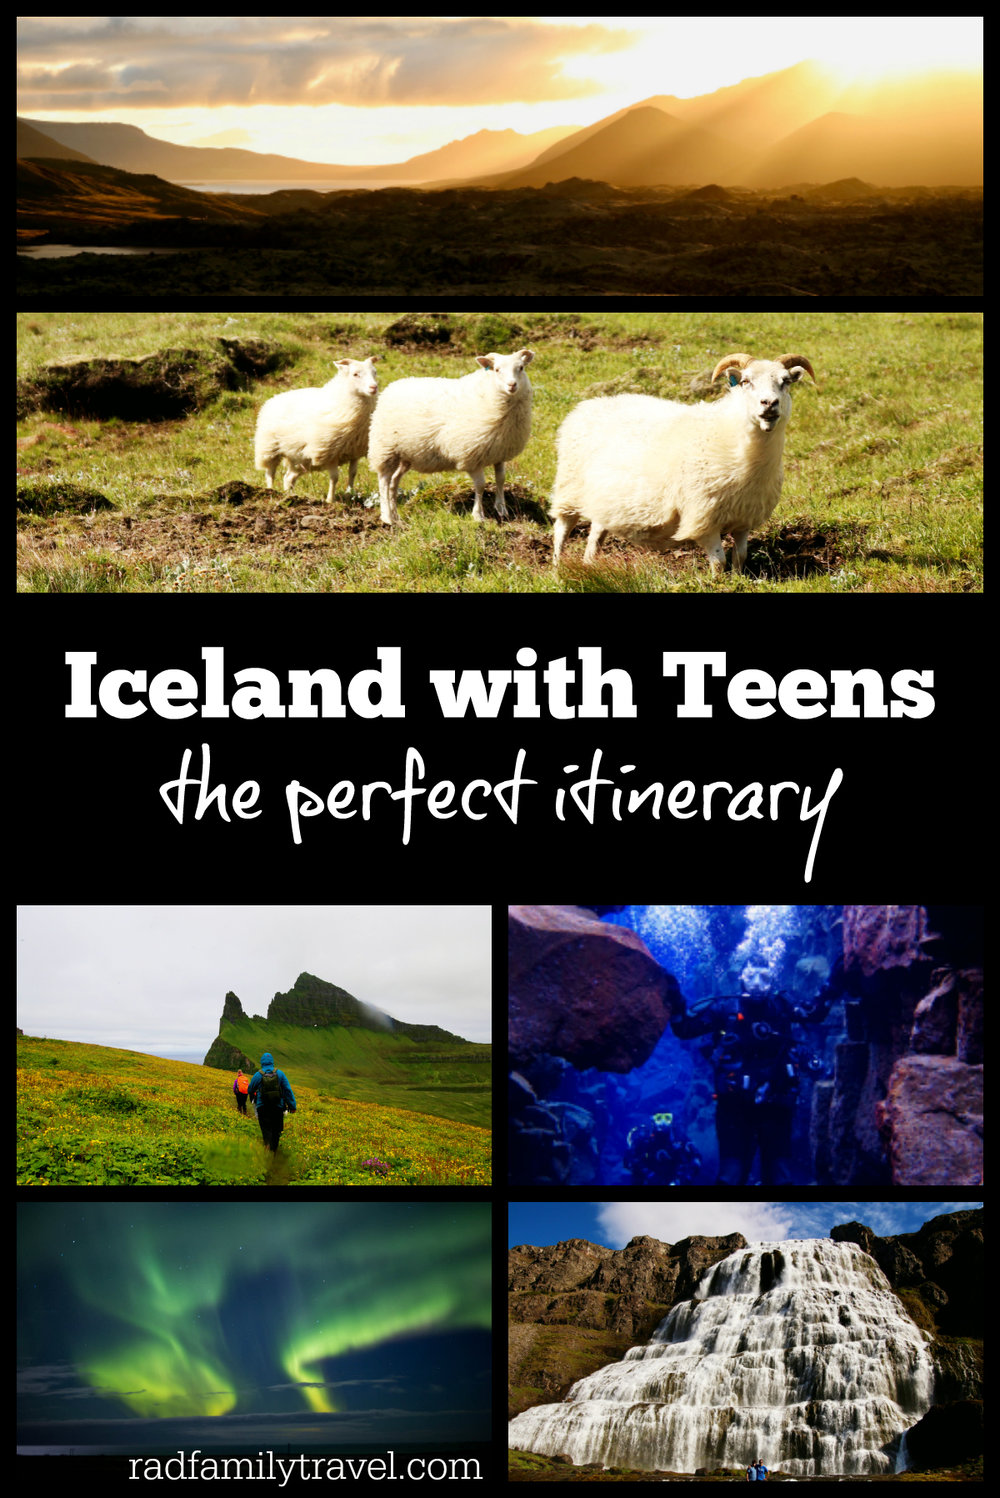 Learn about gorgeous hikes, Northern Lights, spectacular waterfalls, plus scuba diving between continents with your kids Iceland. 10 day itinerary included.